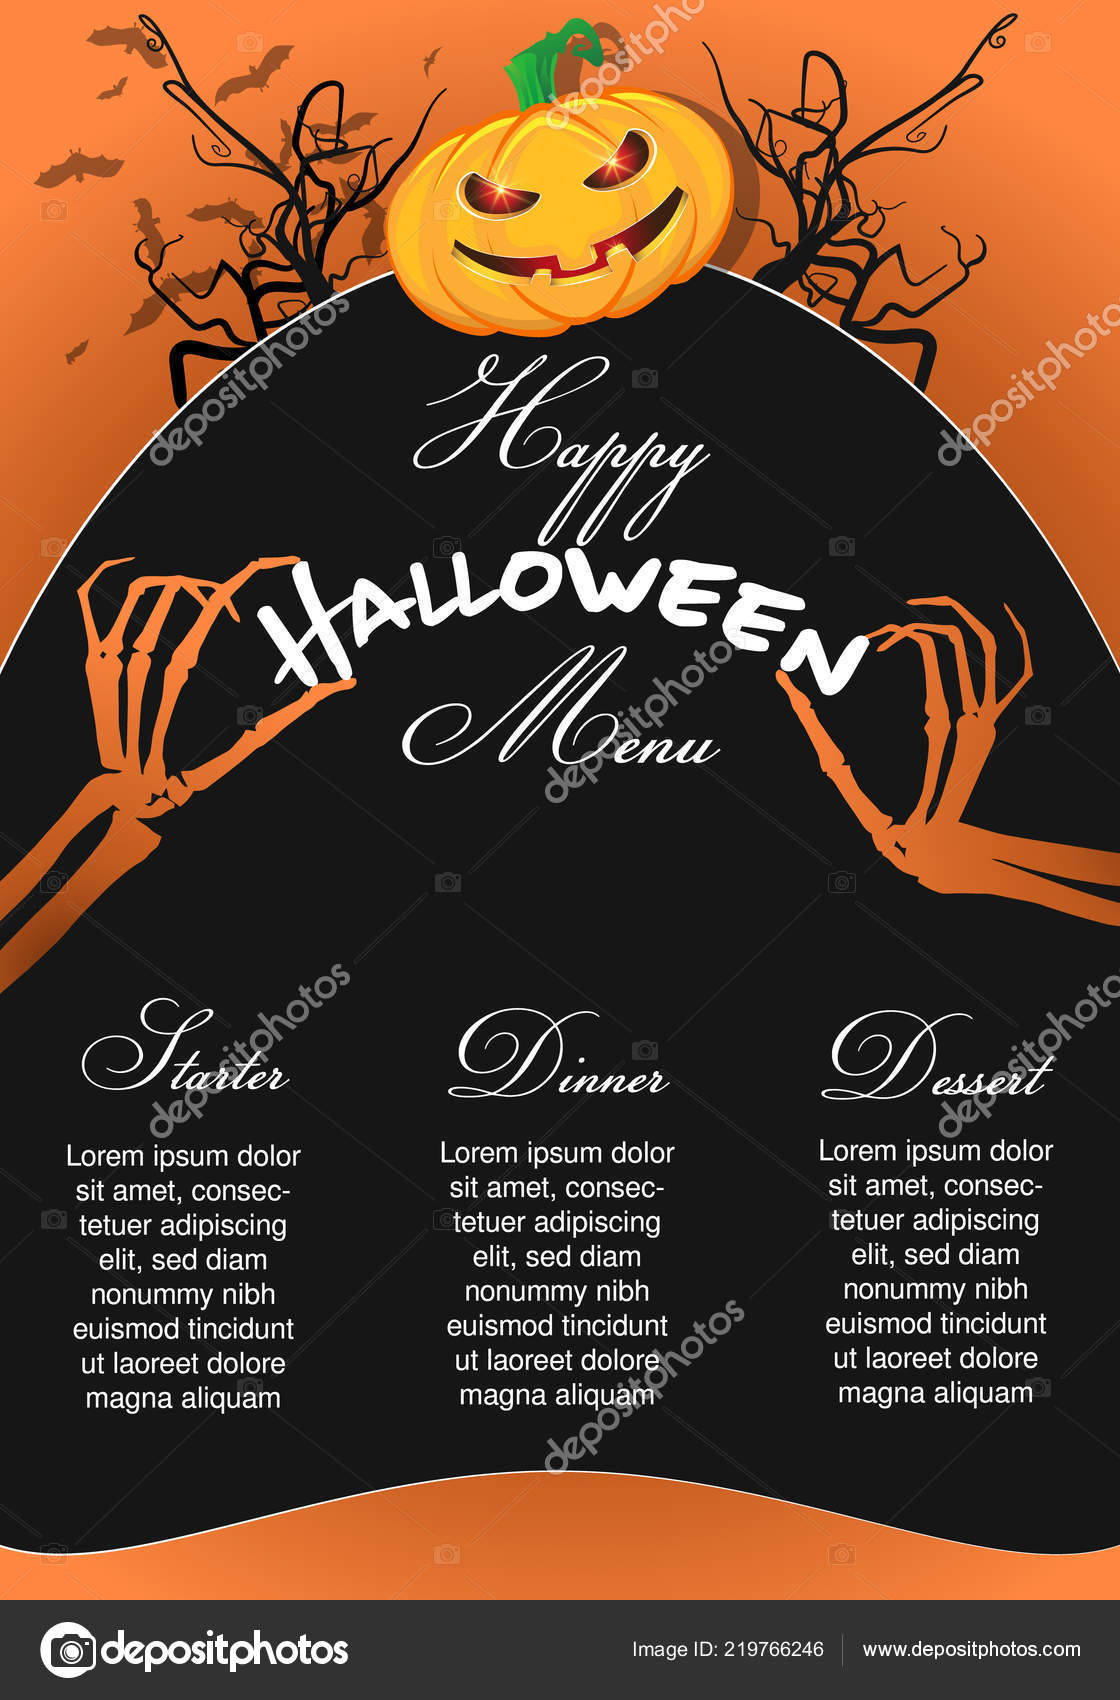 halloween menu template pumpkin chef skeleton hands stock vector